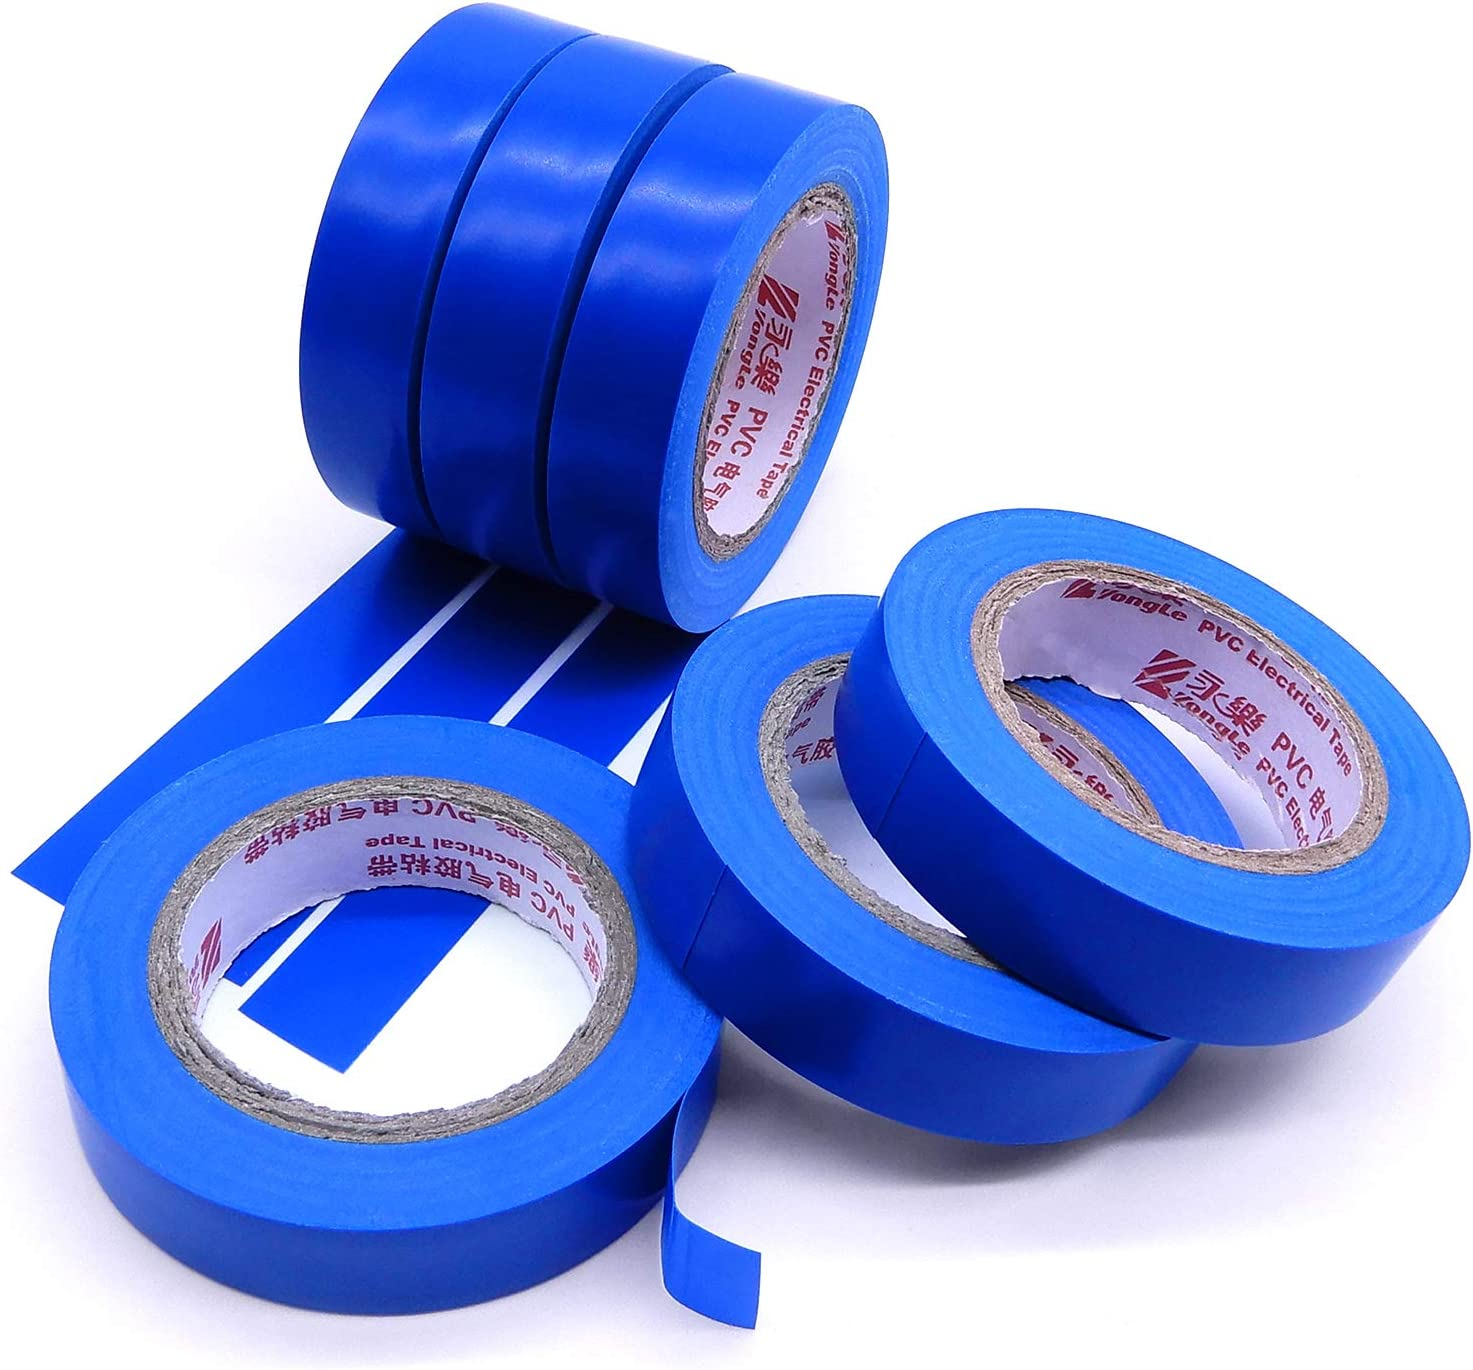 Maveek Pvc Vinyl Electrical Tapes With Rubber Based Adhesive 6 Rolls Blue Electrical Insulation Tape Waterproof Heat Resistant Ul Listed Flame Retardant Industrial Scientific Electrical Tape